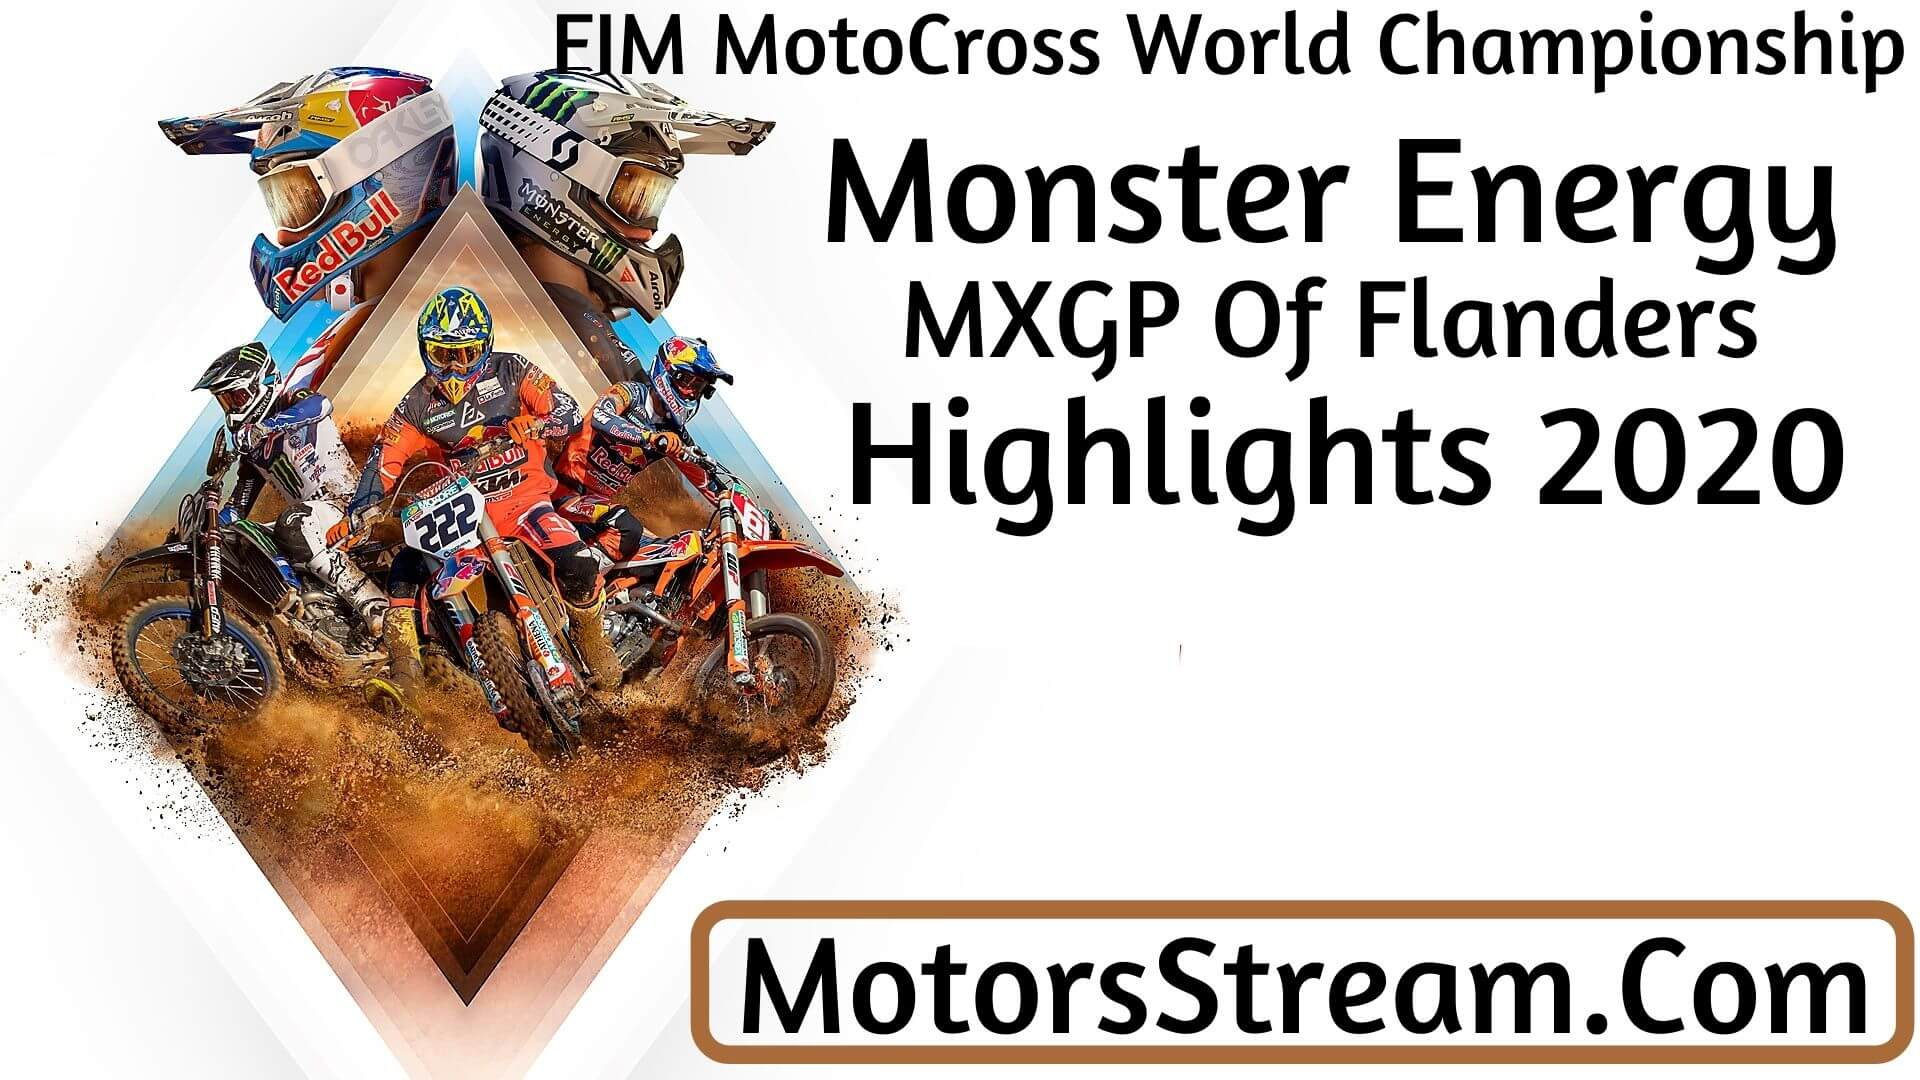 Monster Energy MXGP of Flanders Highlights 2020